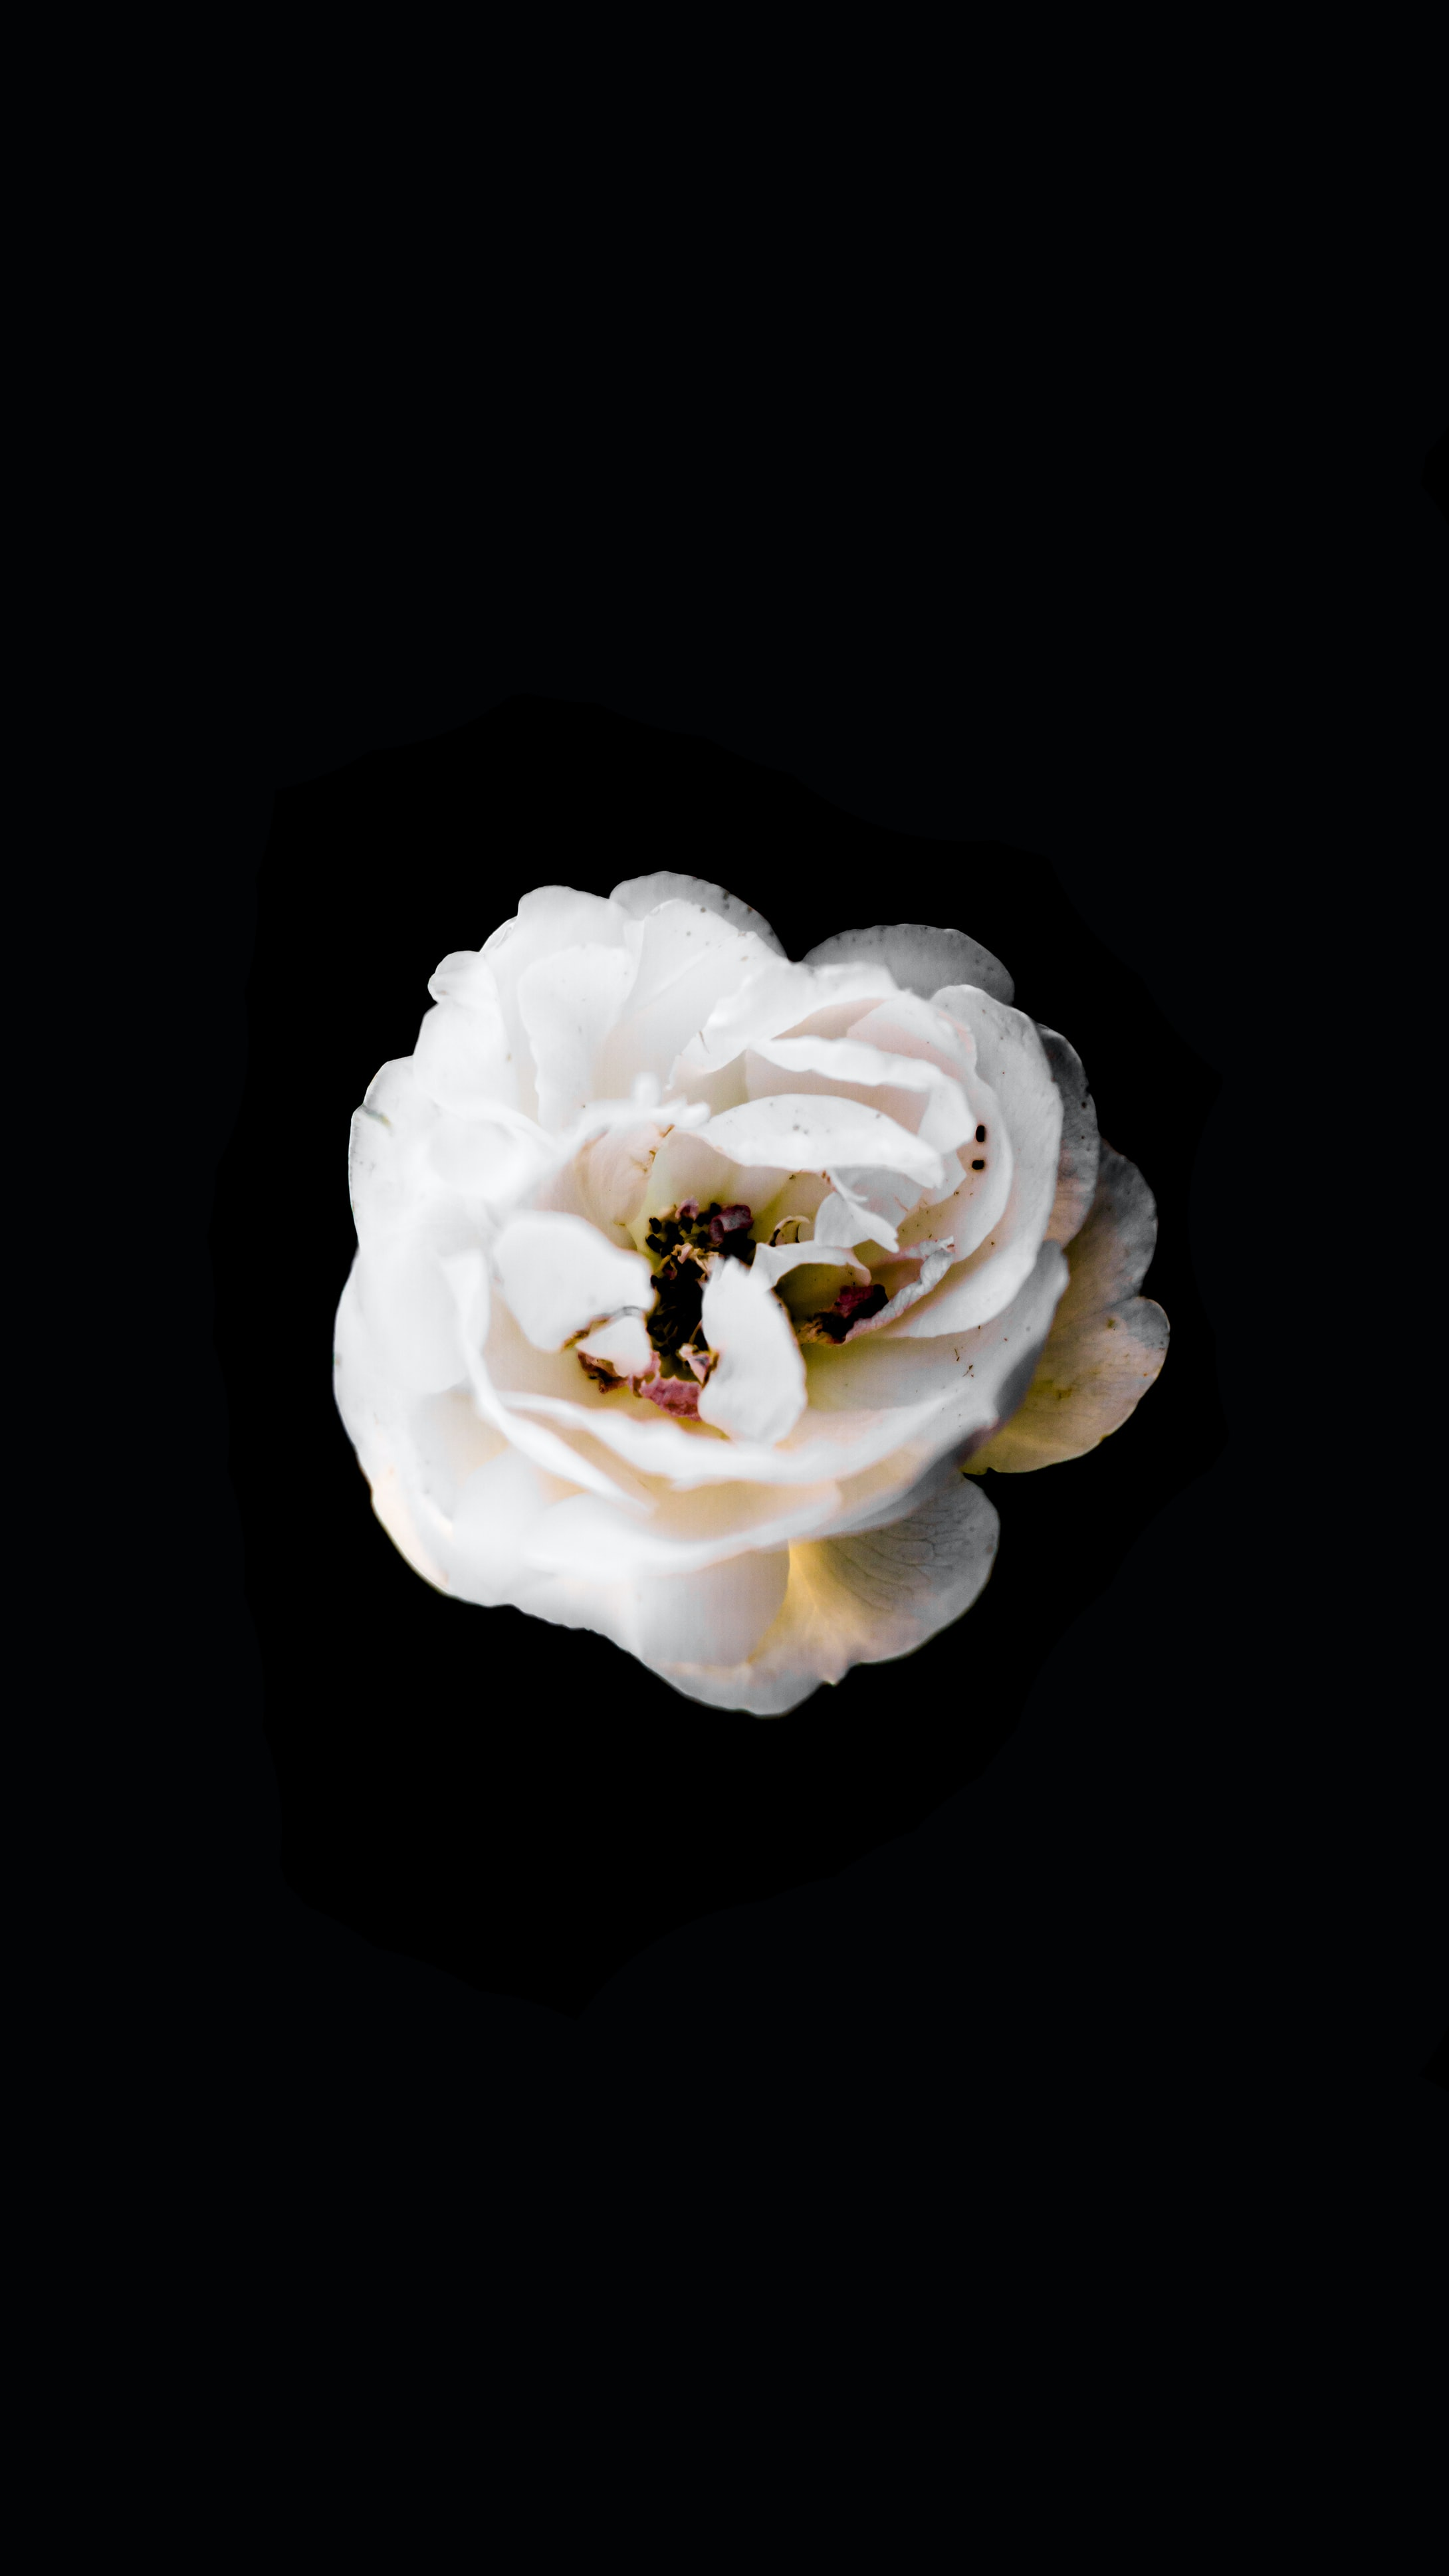 An above view of the petals on a white flower with a dark background.